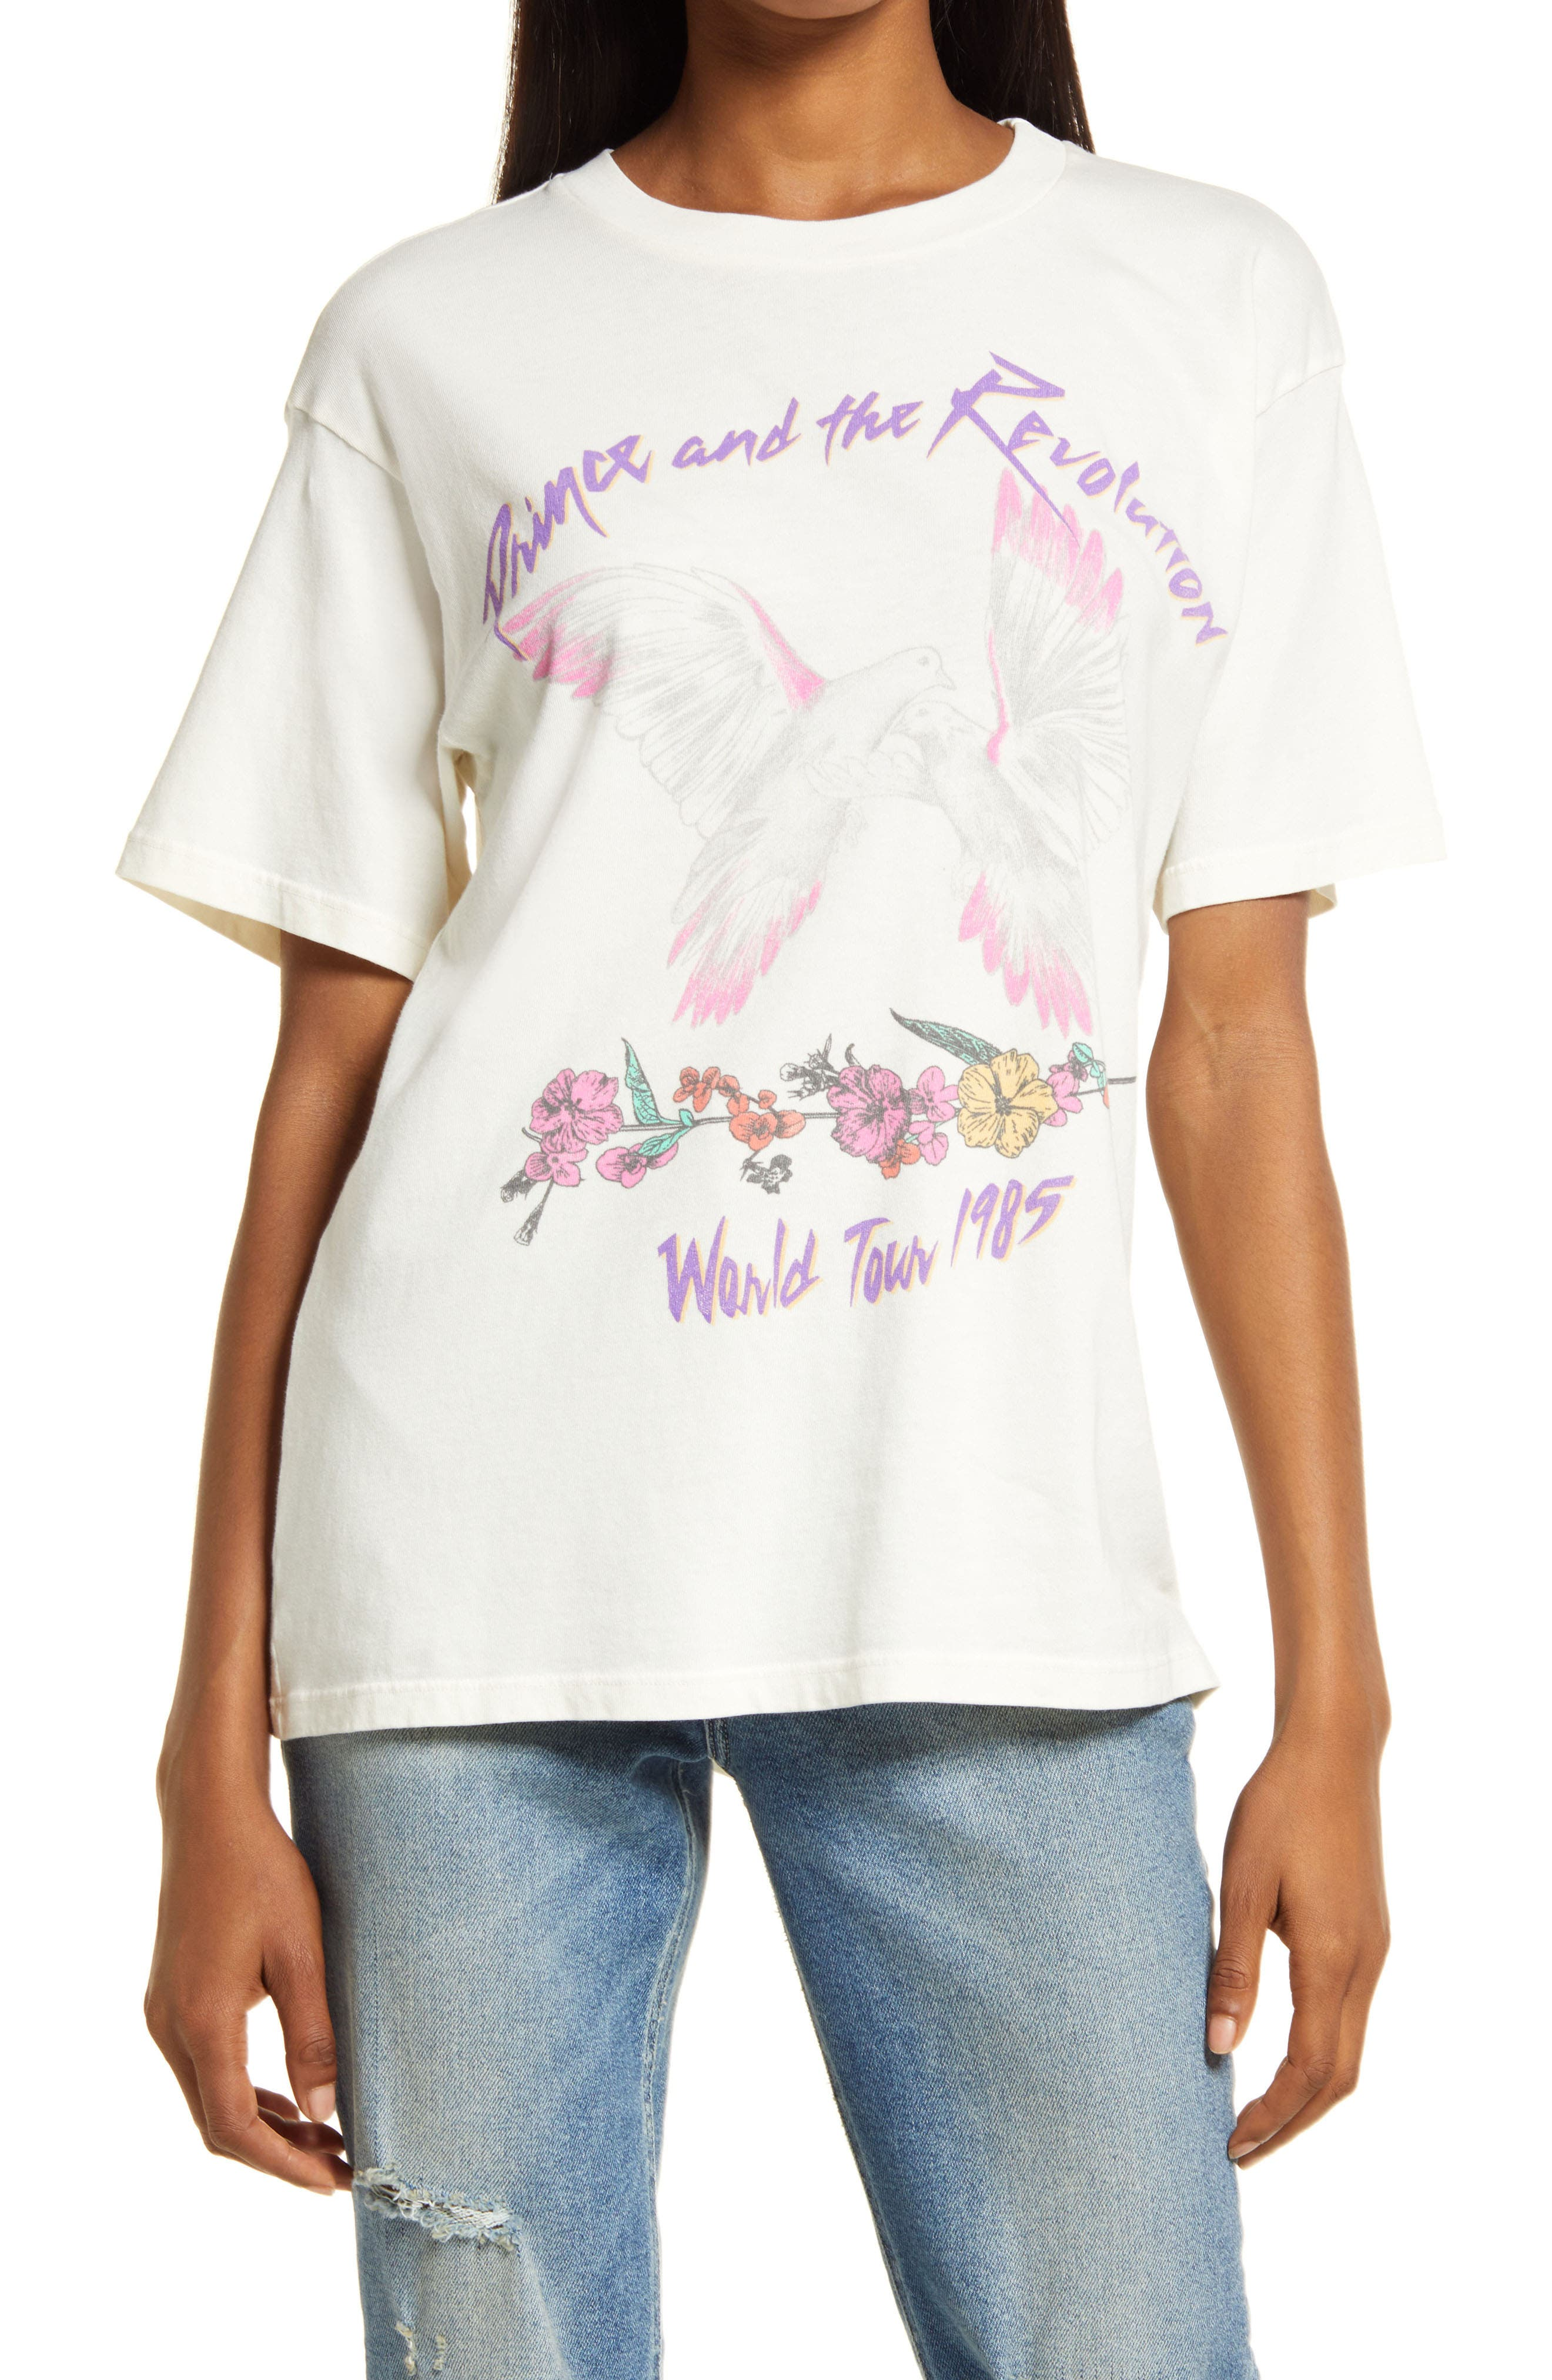 Prince World Tour 1985 Weekend Cotton Graphic Tee